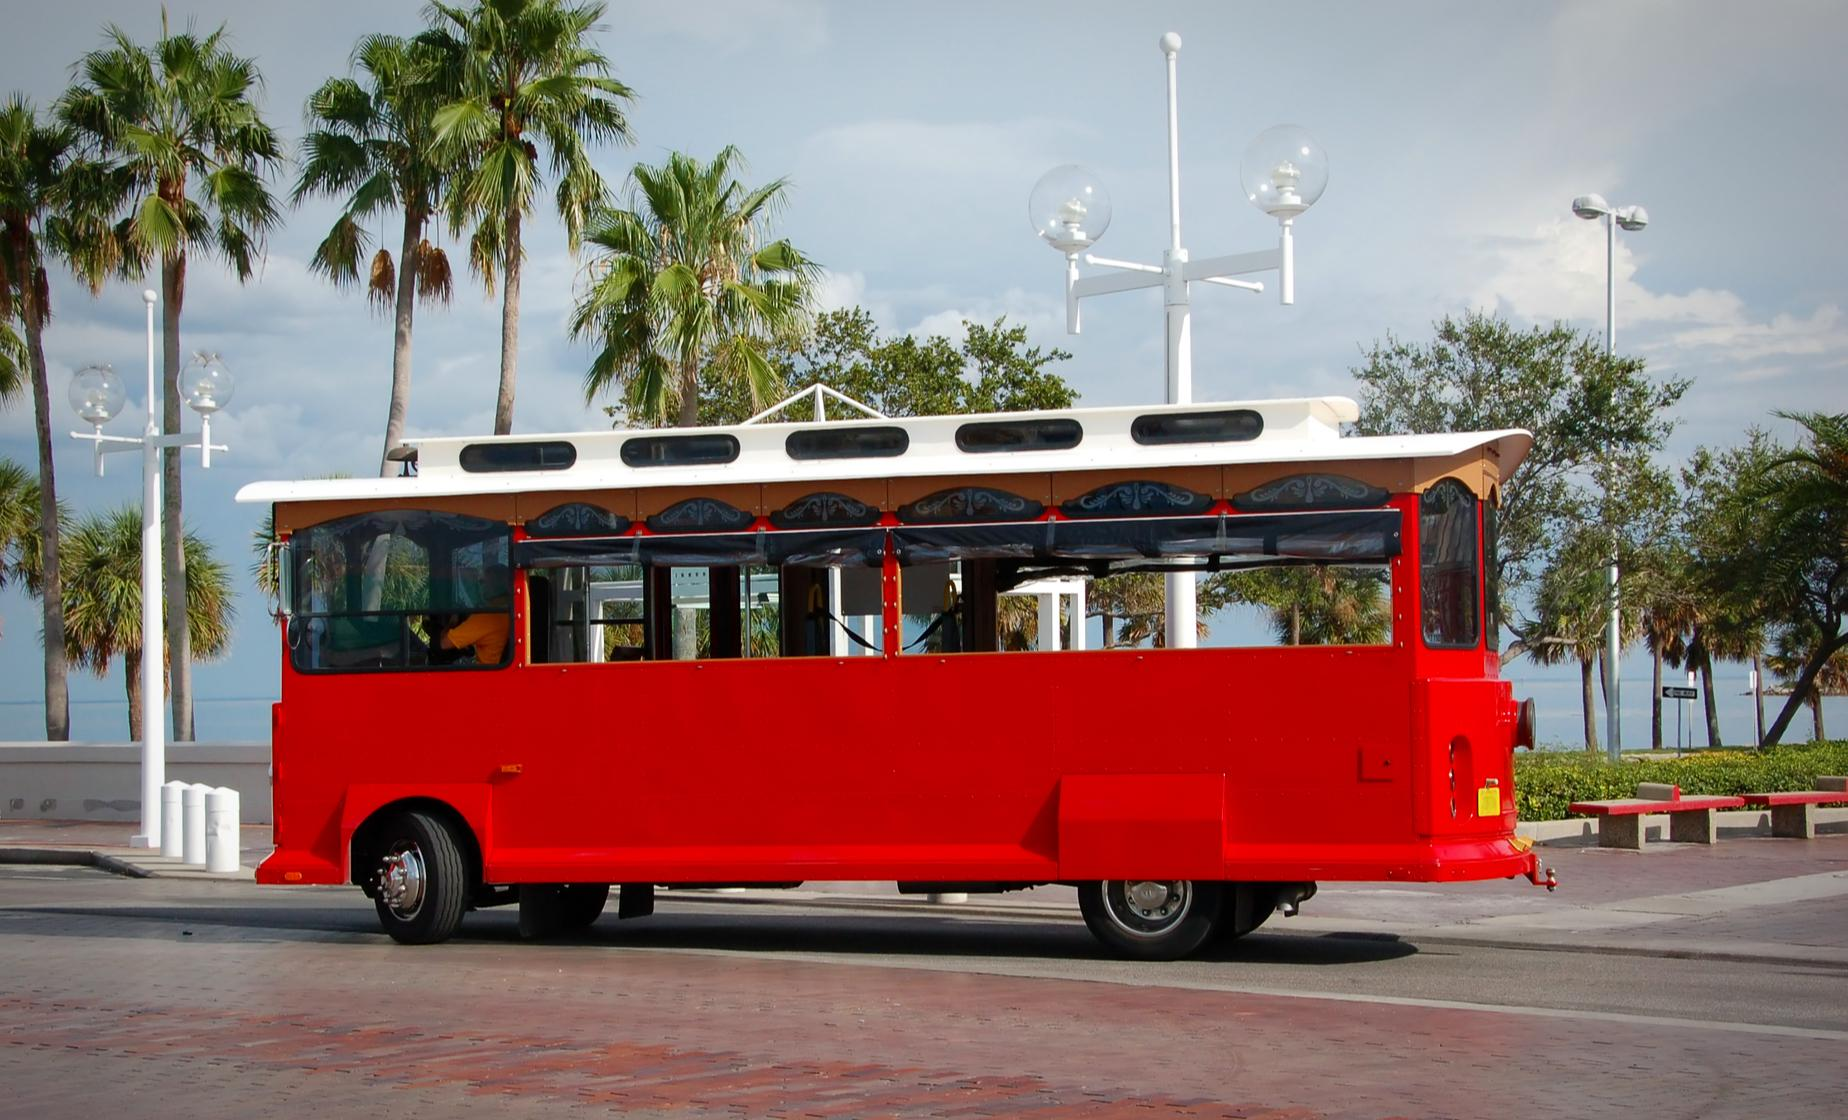 City Tour by Cozumel Trolley